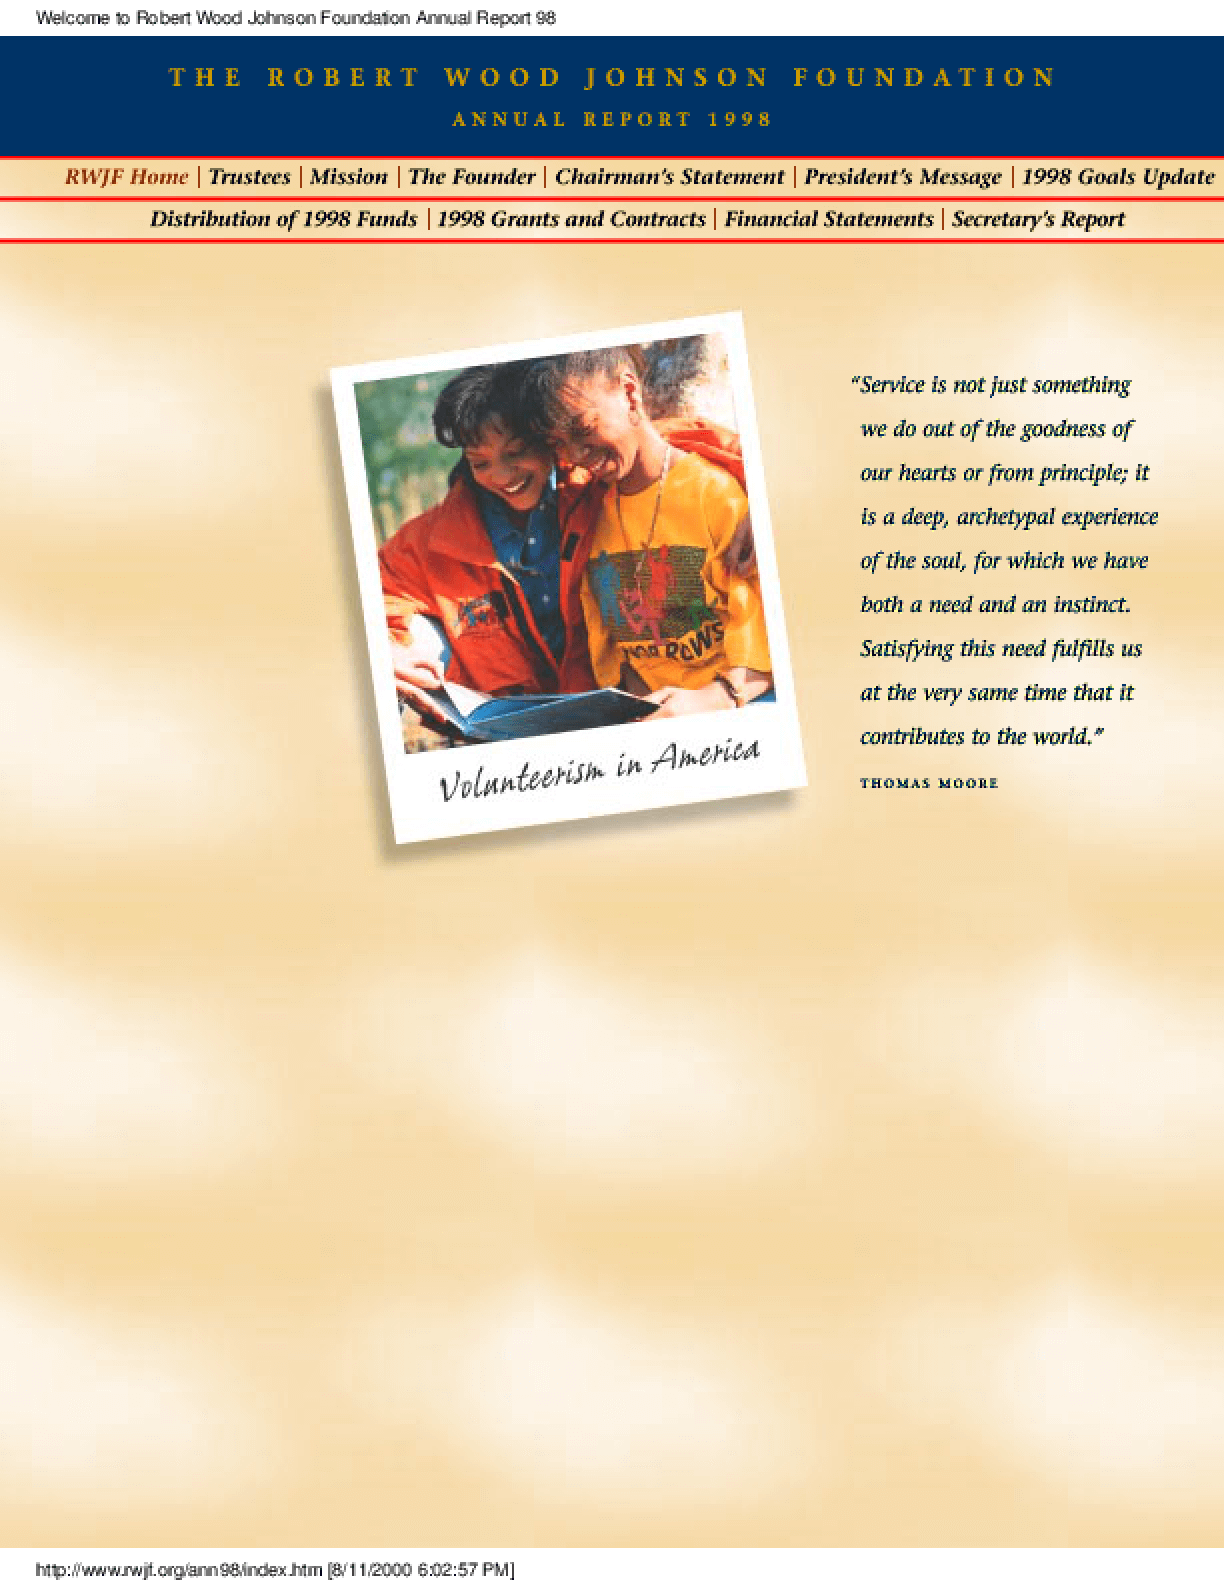 Robert Wood Johnson Foundation - 1998 Annual Report: Volunteerism in America